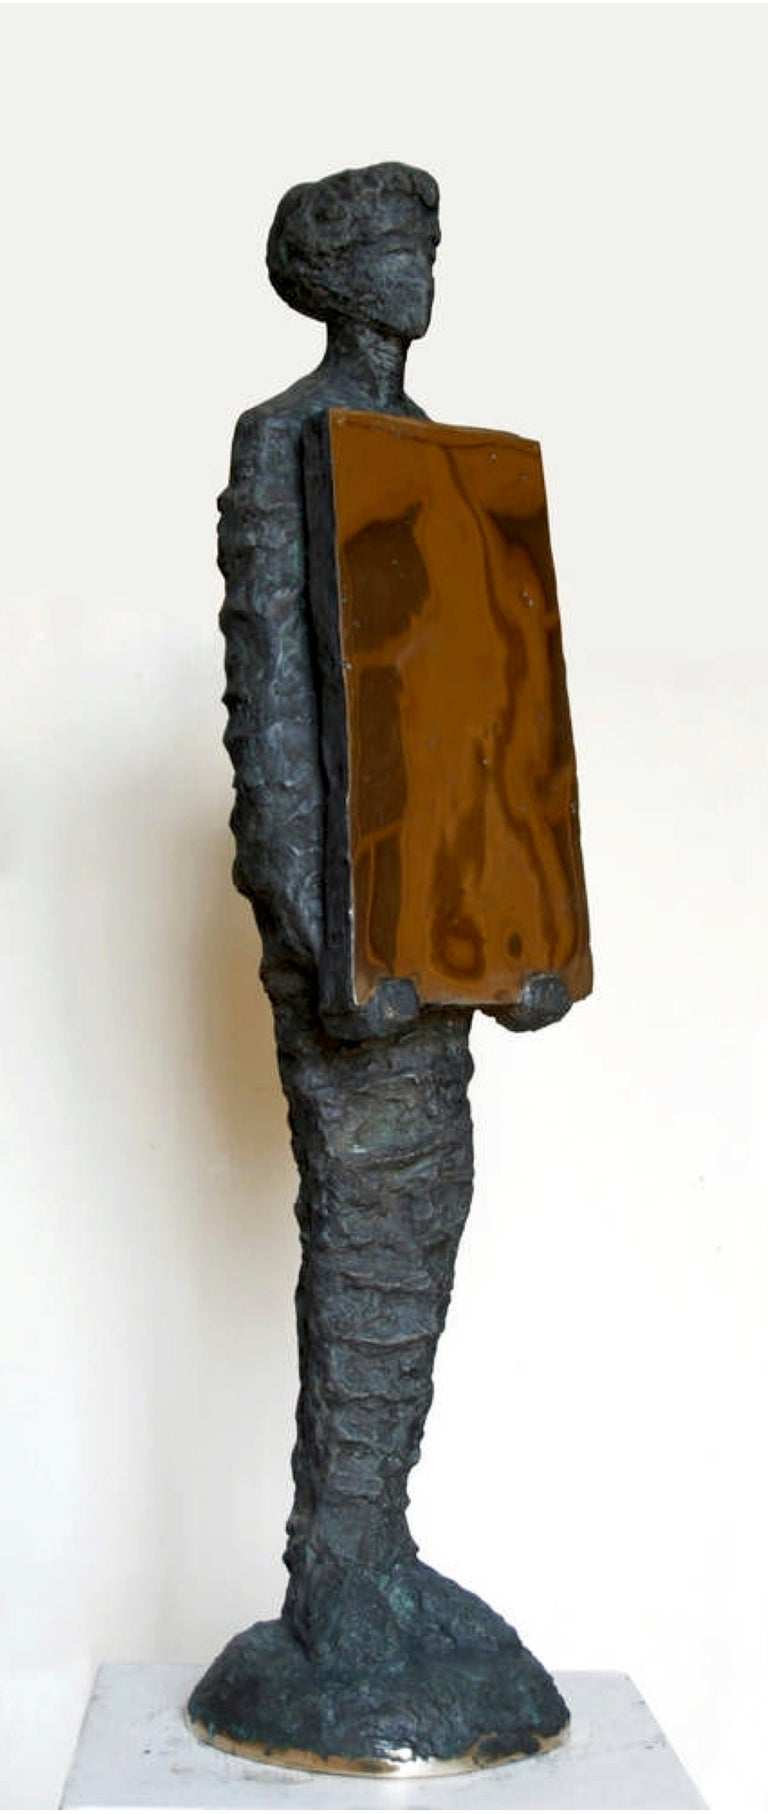 """Holding Mirror"" Bronze Sculpture 38""x8""x7"" inch by Sarkis Tossonian			   Sarkis Tossoonian was born in Alexandria in 1953. He graduated from the Faculty of Fine Arts/Sculpture in 1979. He started exhibiting in individual and group exhibitions in"